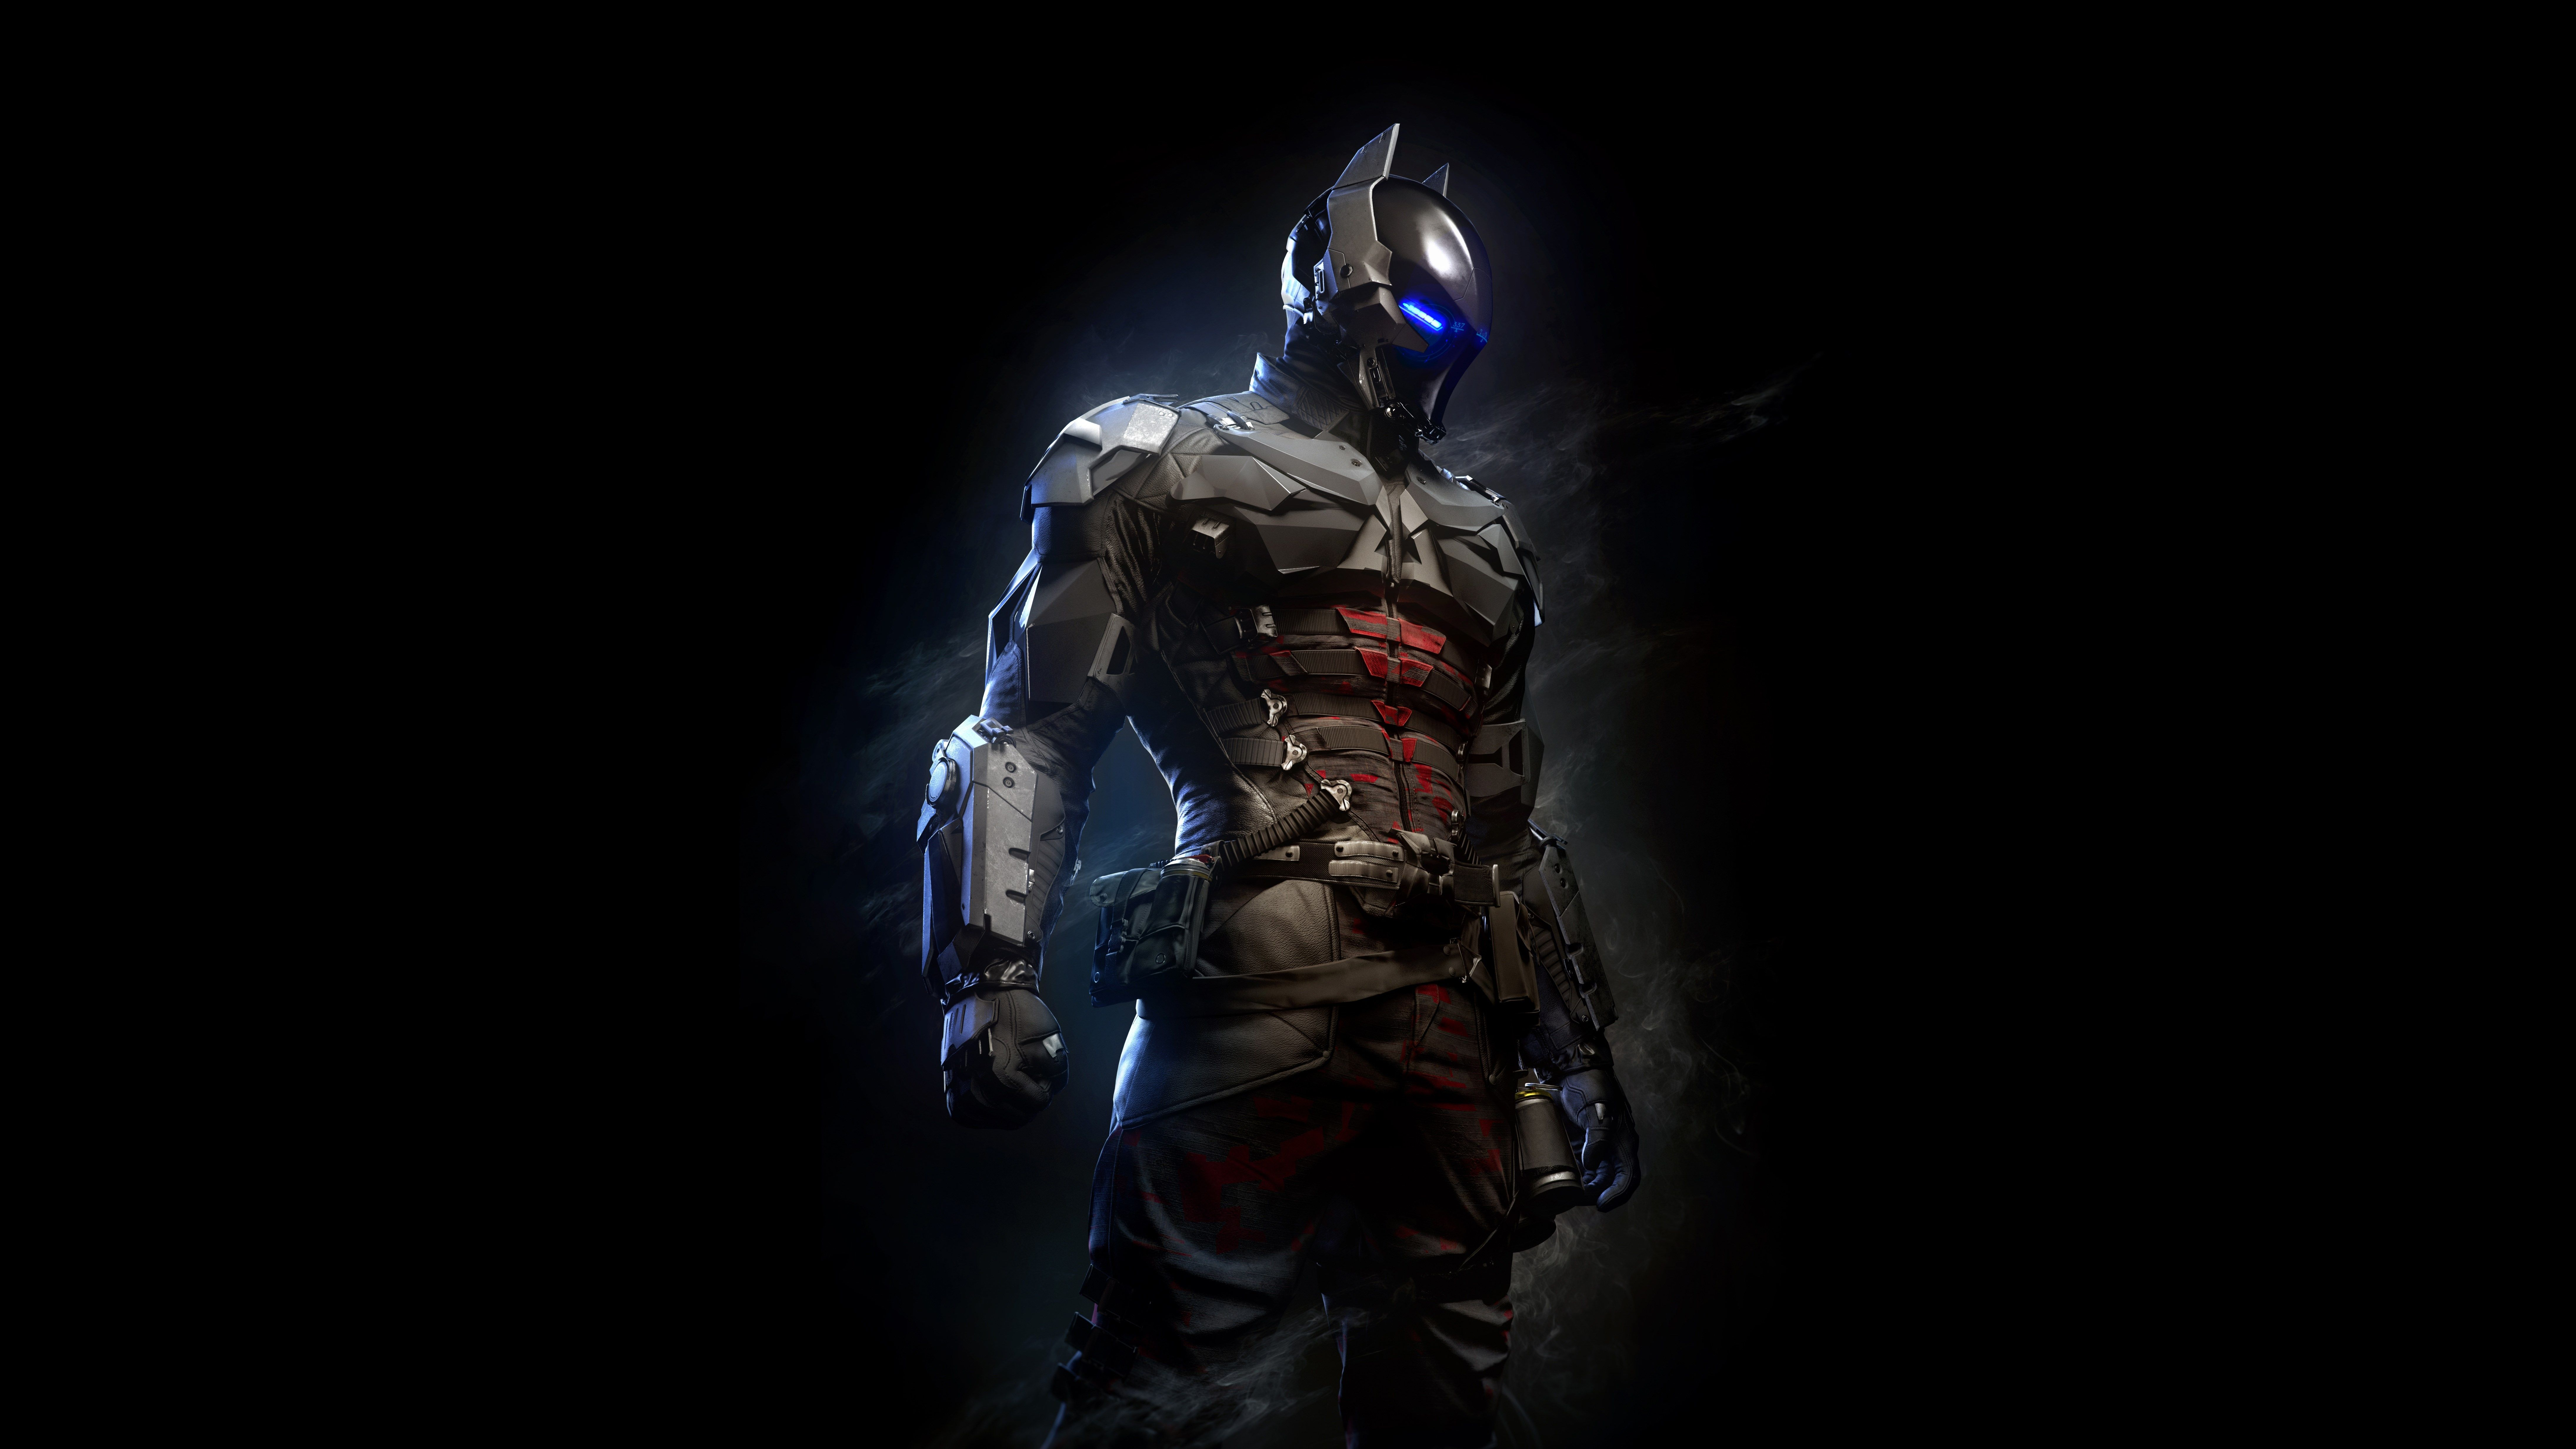 download hd batman arkham knight backgrounds | ololoshka | Pinterest